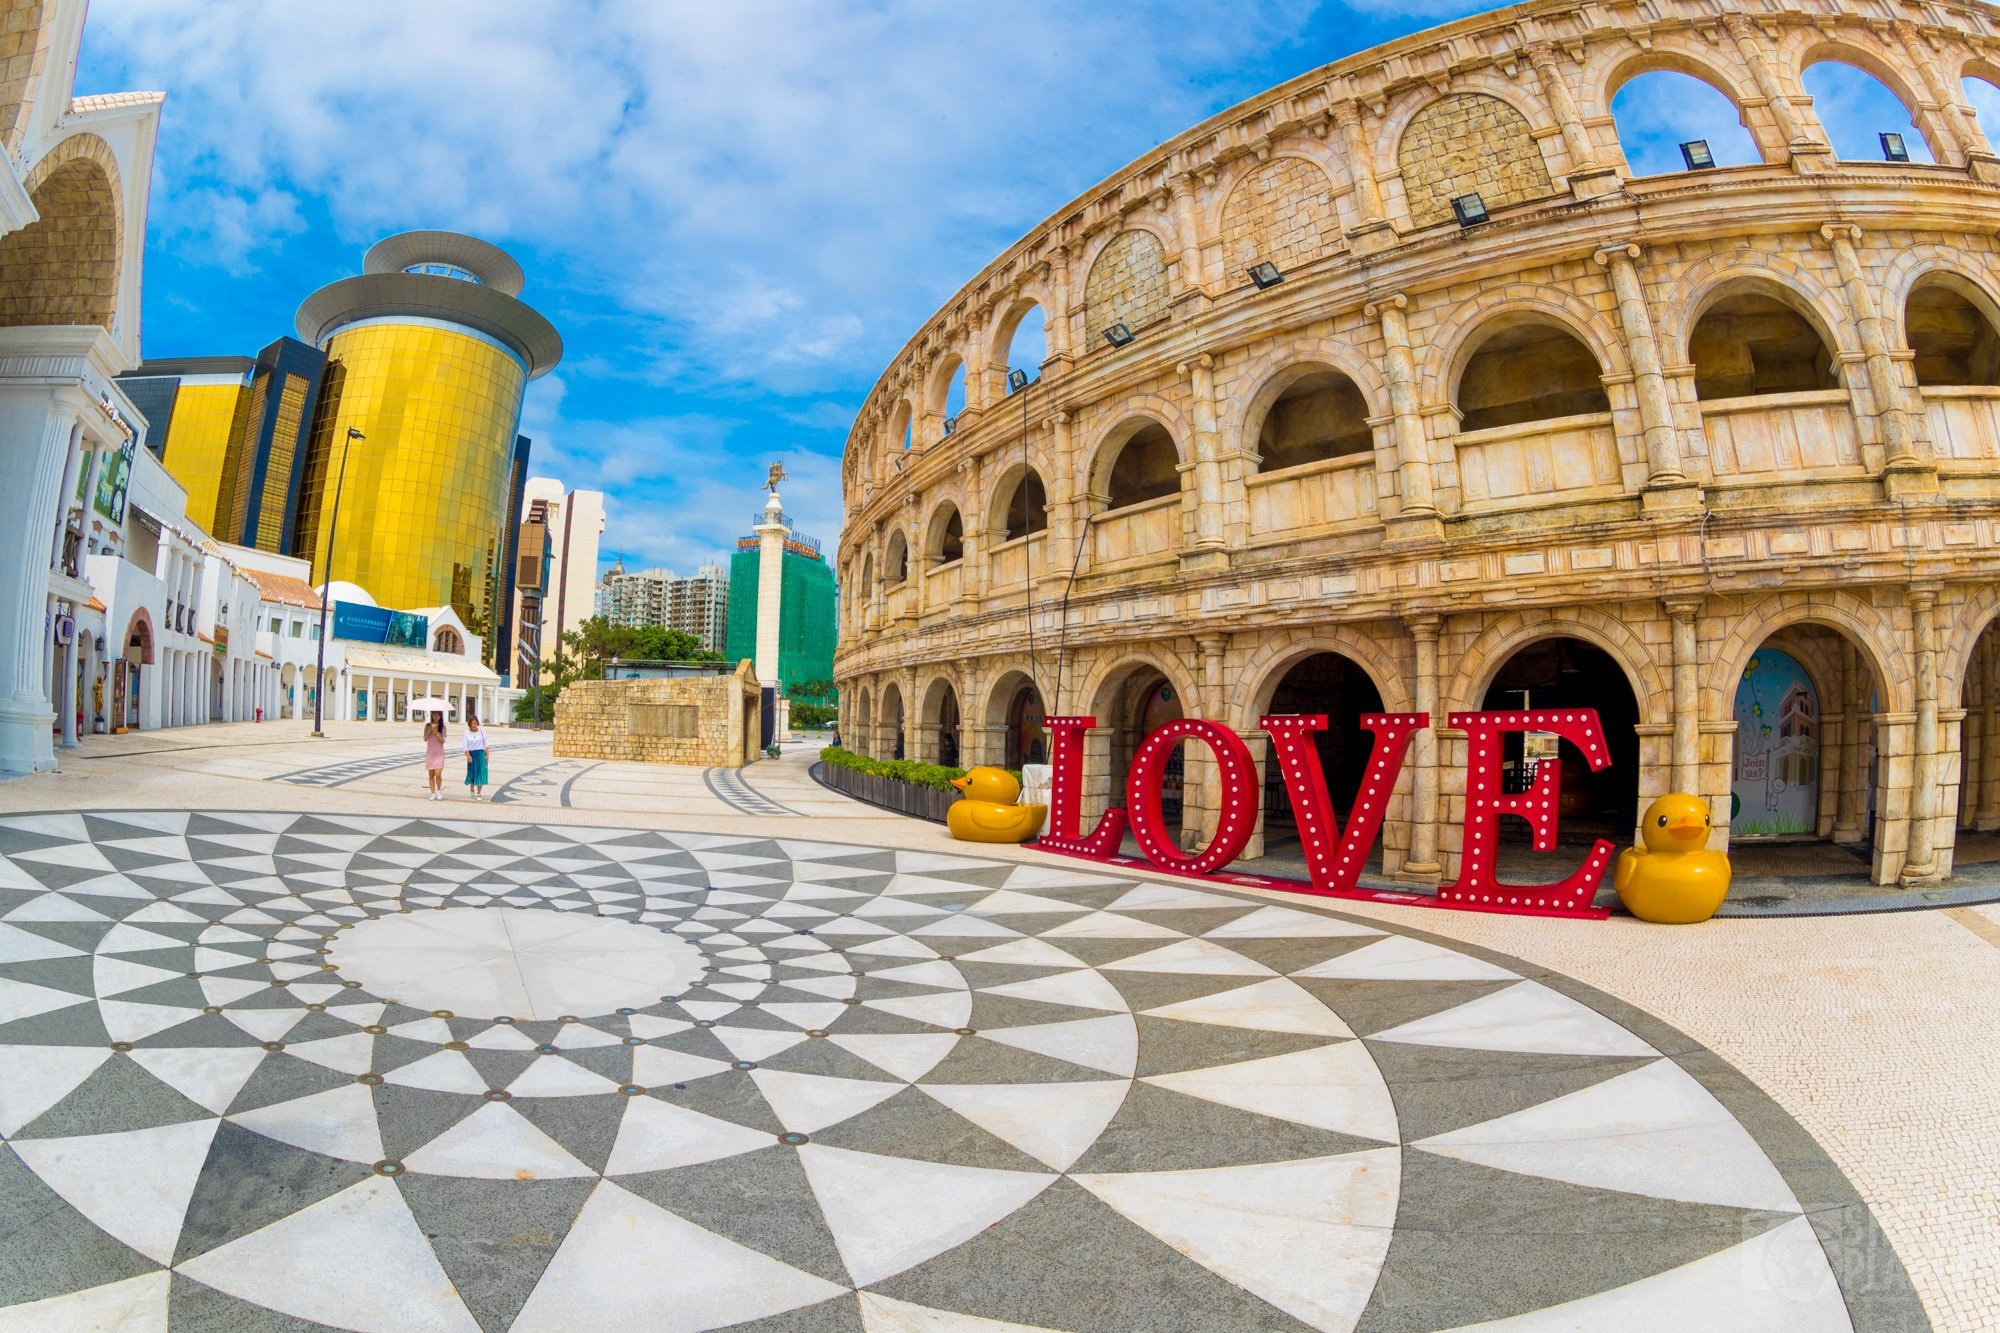 Roman amphitheater coliseum of Macao in China